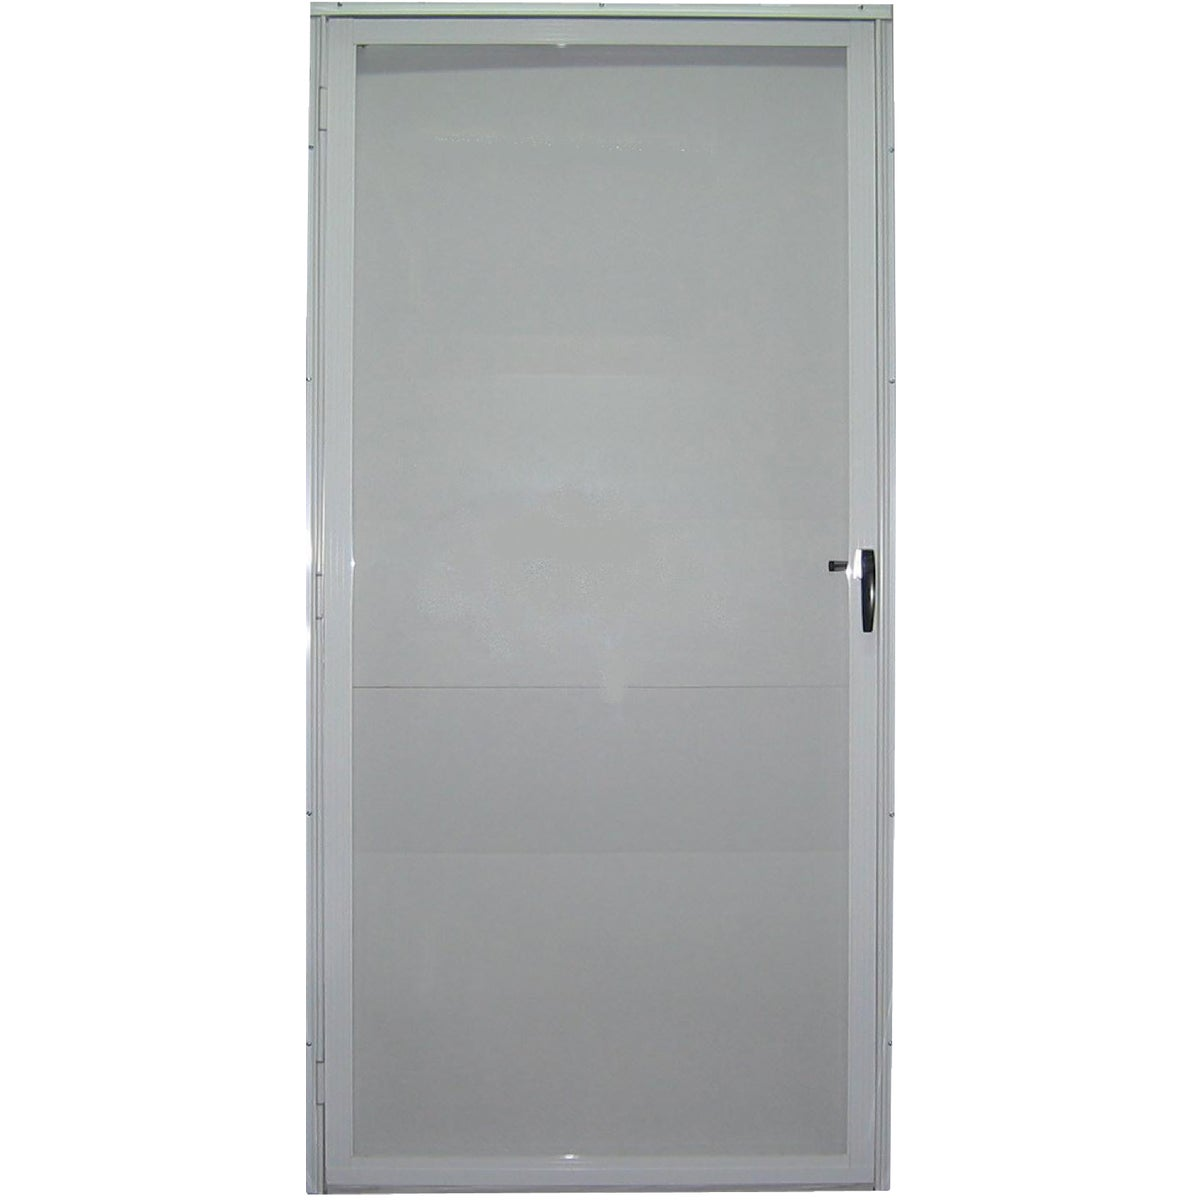 265 2868 LH WHT DOOR - F05990 by Croft Llc